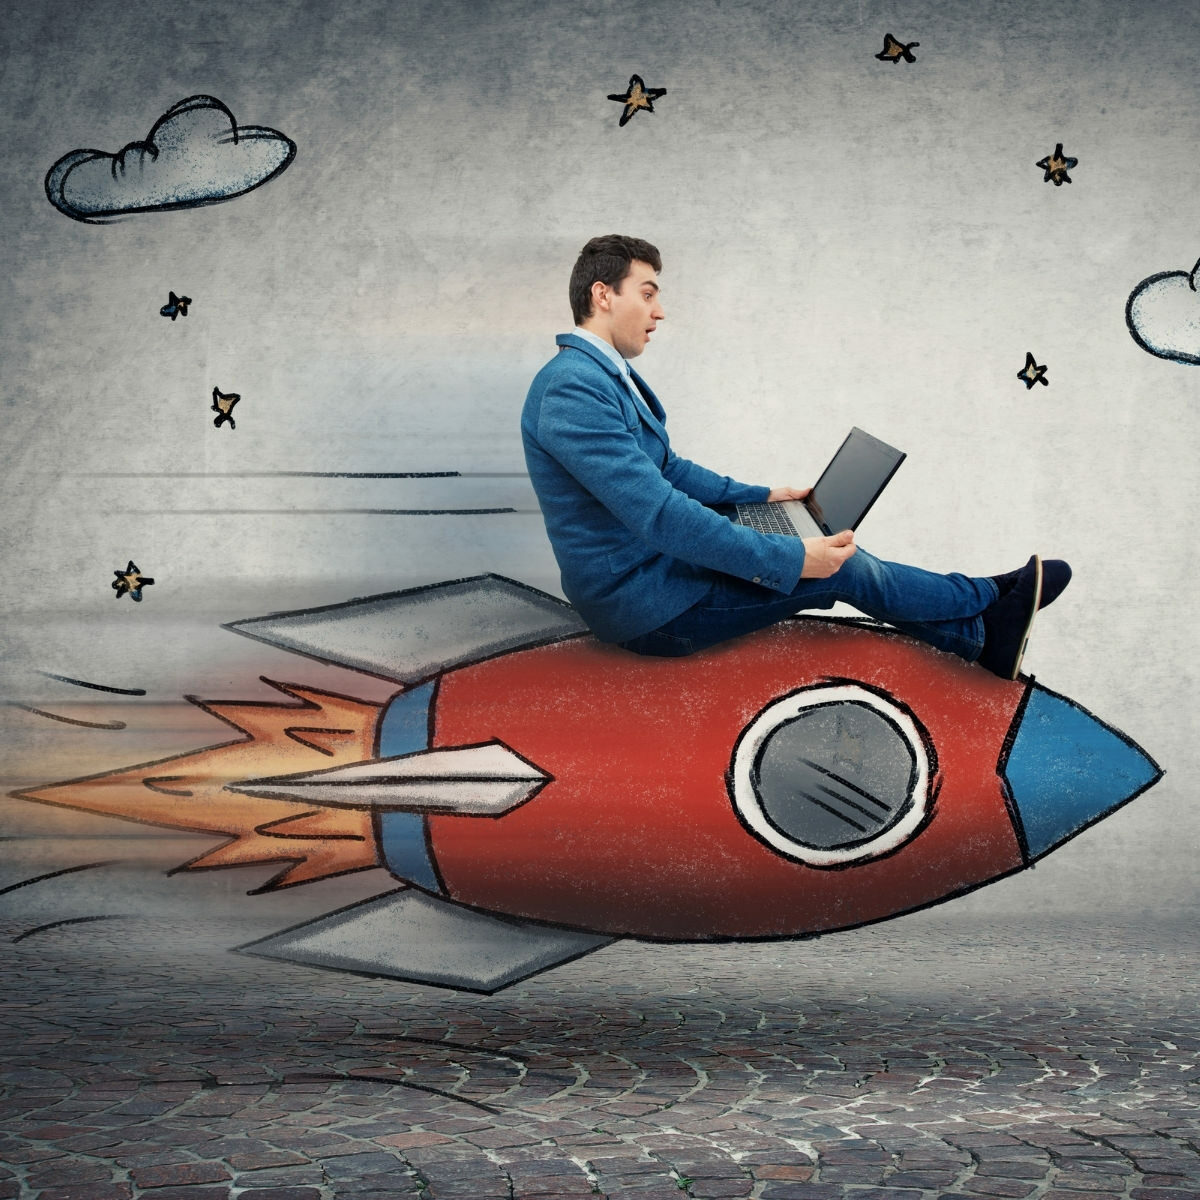 Man on a rocketship being a leader in business